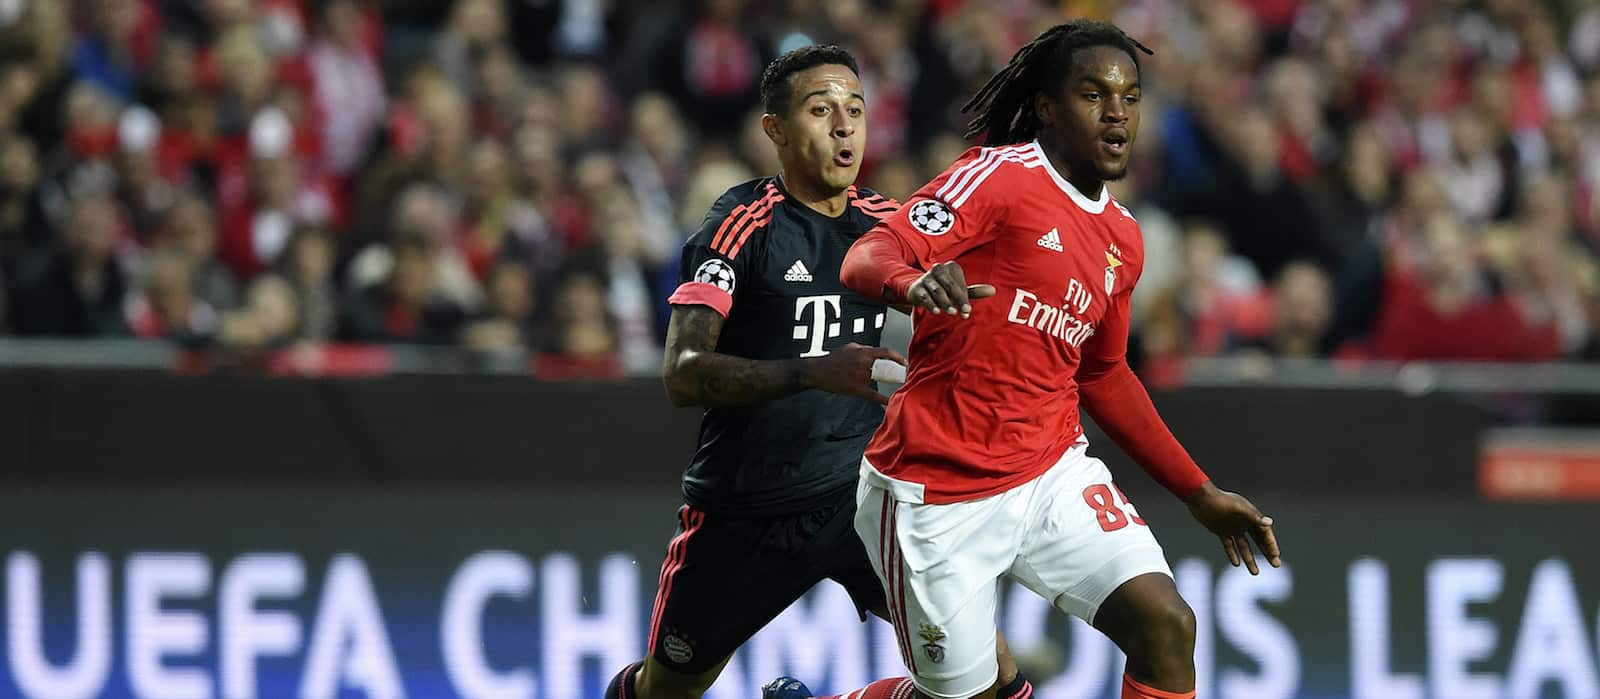 Rummenigge: Bayern Munich beat Manchester United to the signing of Renato Sanches